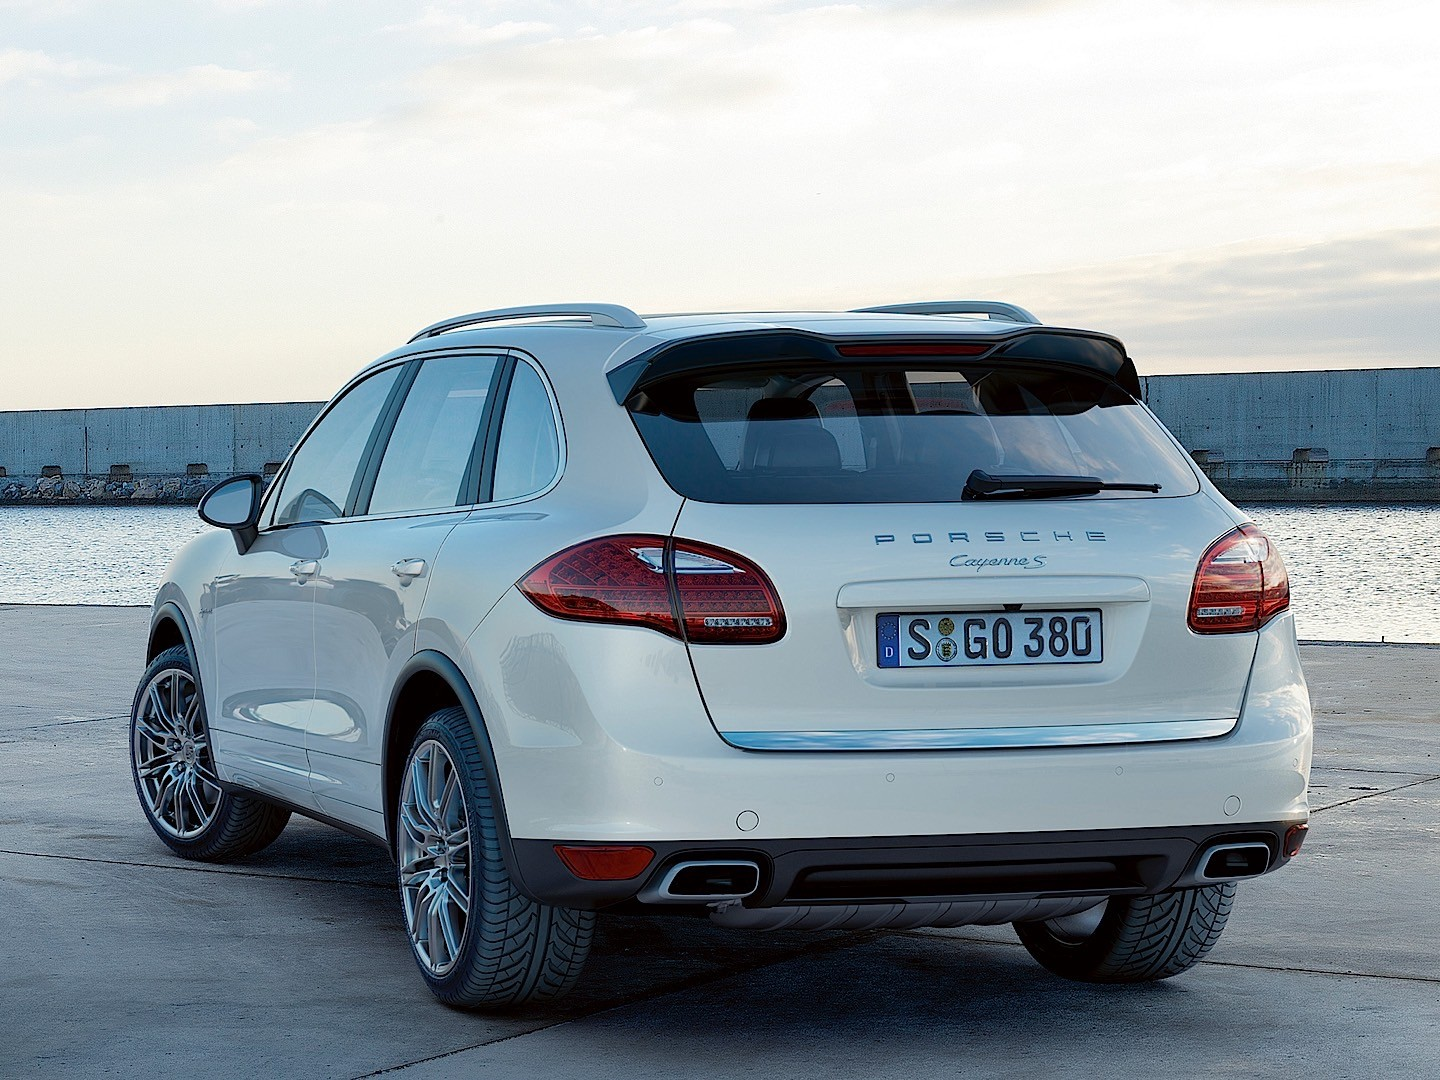 porsche cayenne s hybrid specs 2010 2011 2012 2013 2014 autoevolution. Black Bedroom Furniture Sets. Home Design Ideas